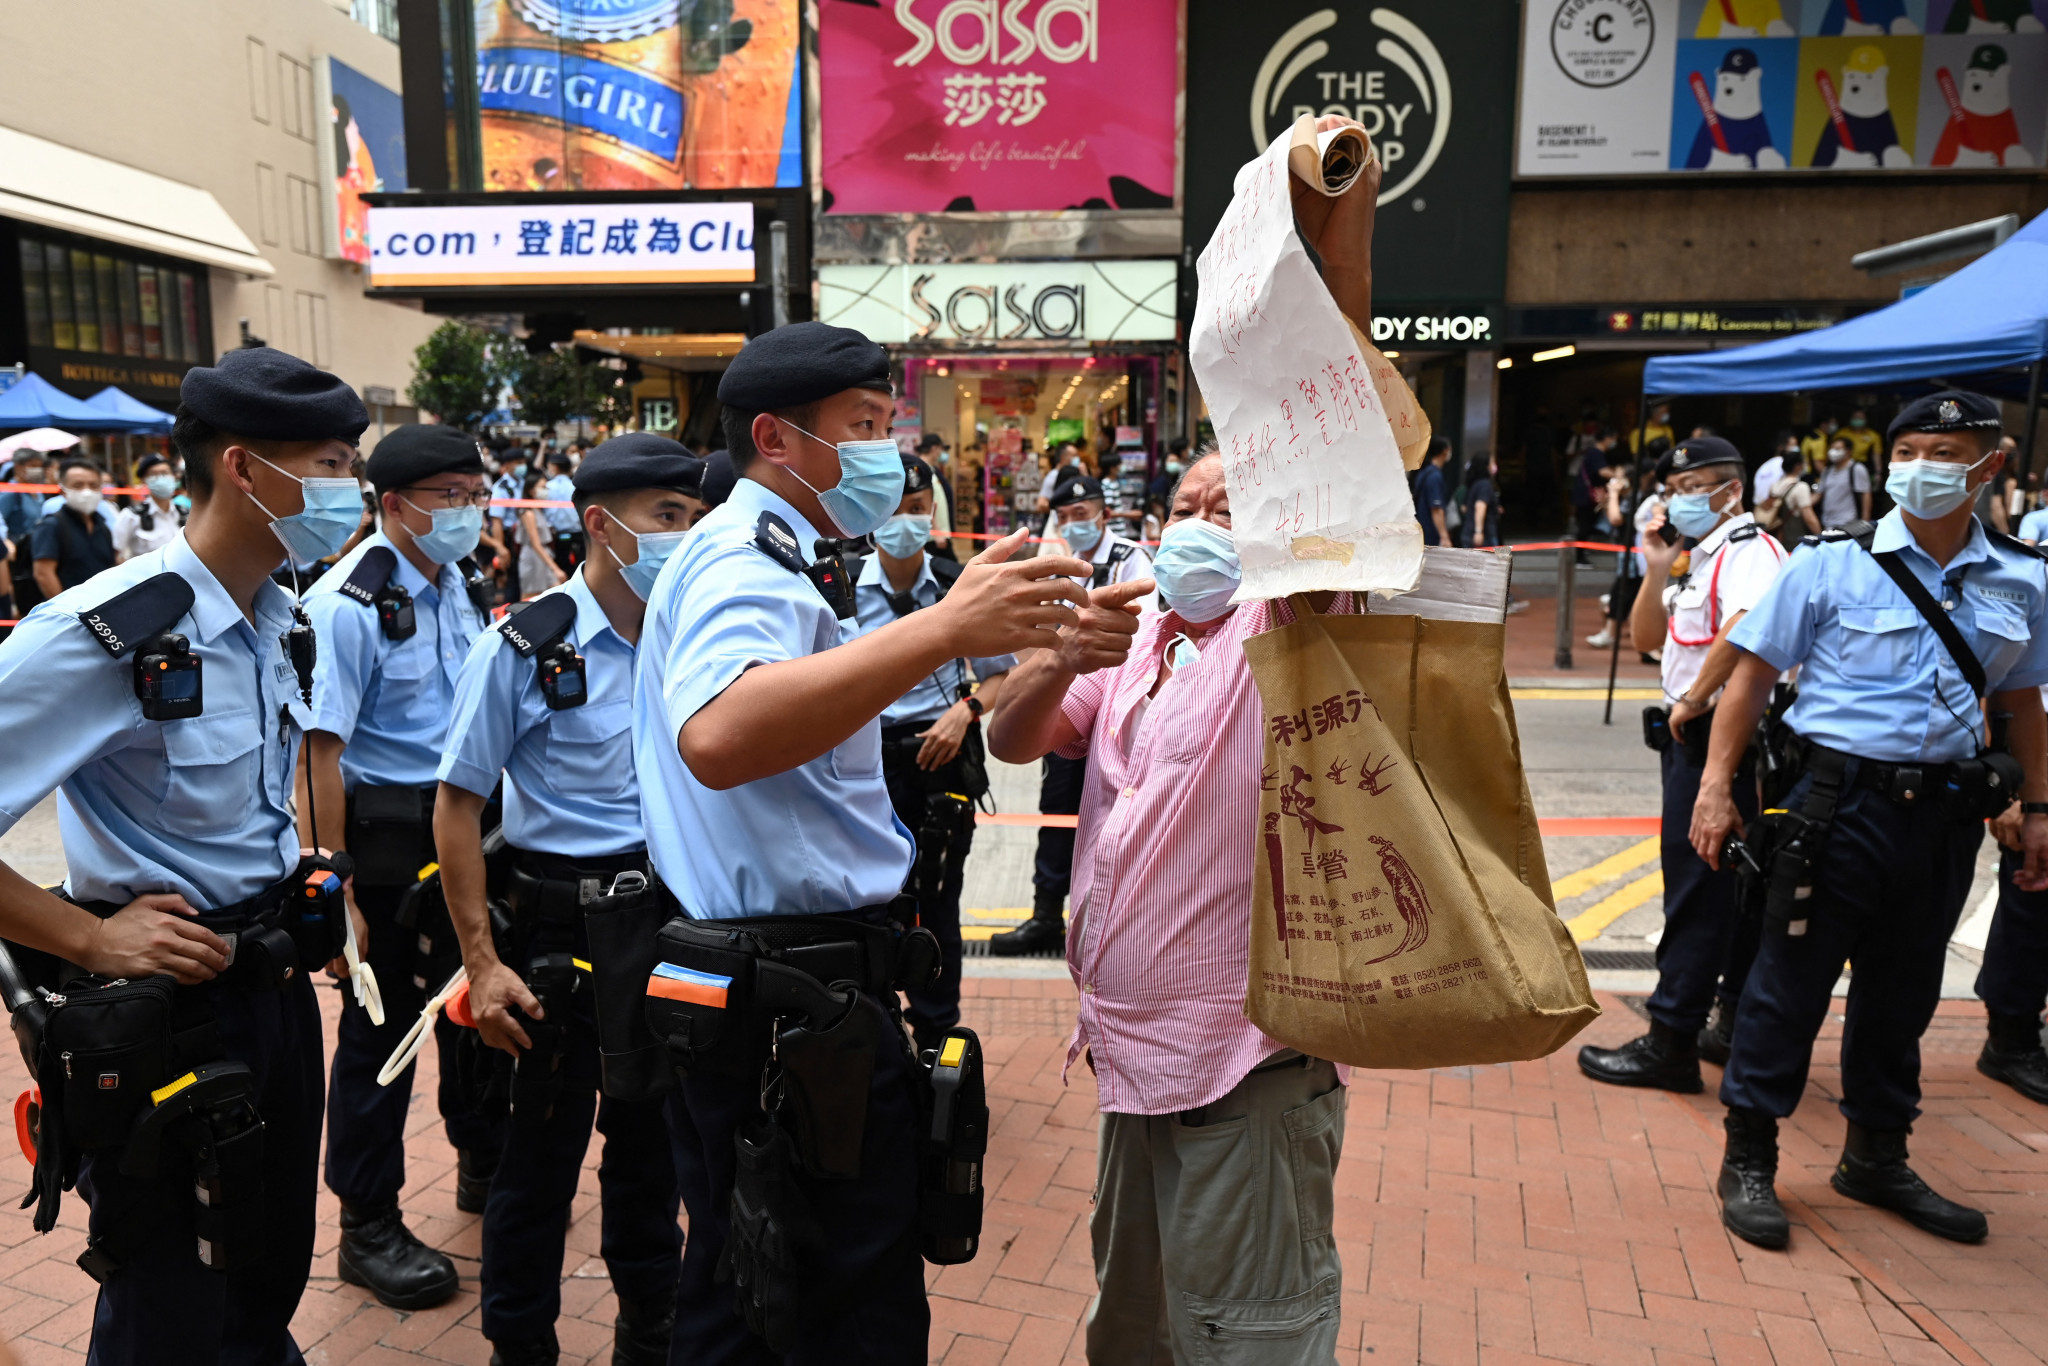 A crackdown on democracy campaigners in Hong Kong is among the human rights abuses that earned China criticism in the West ©Getty Images